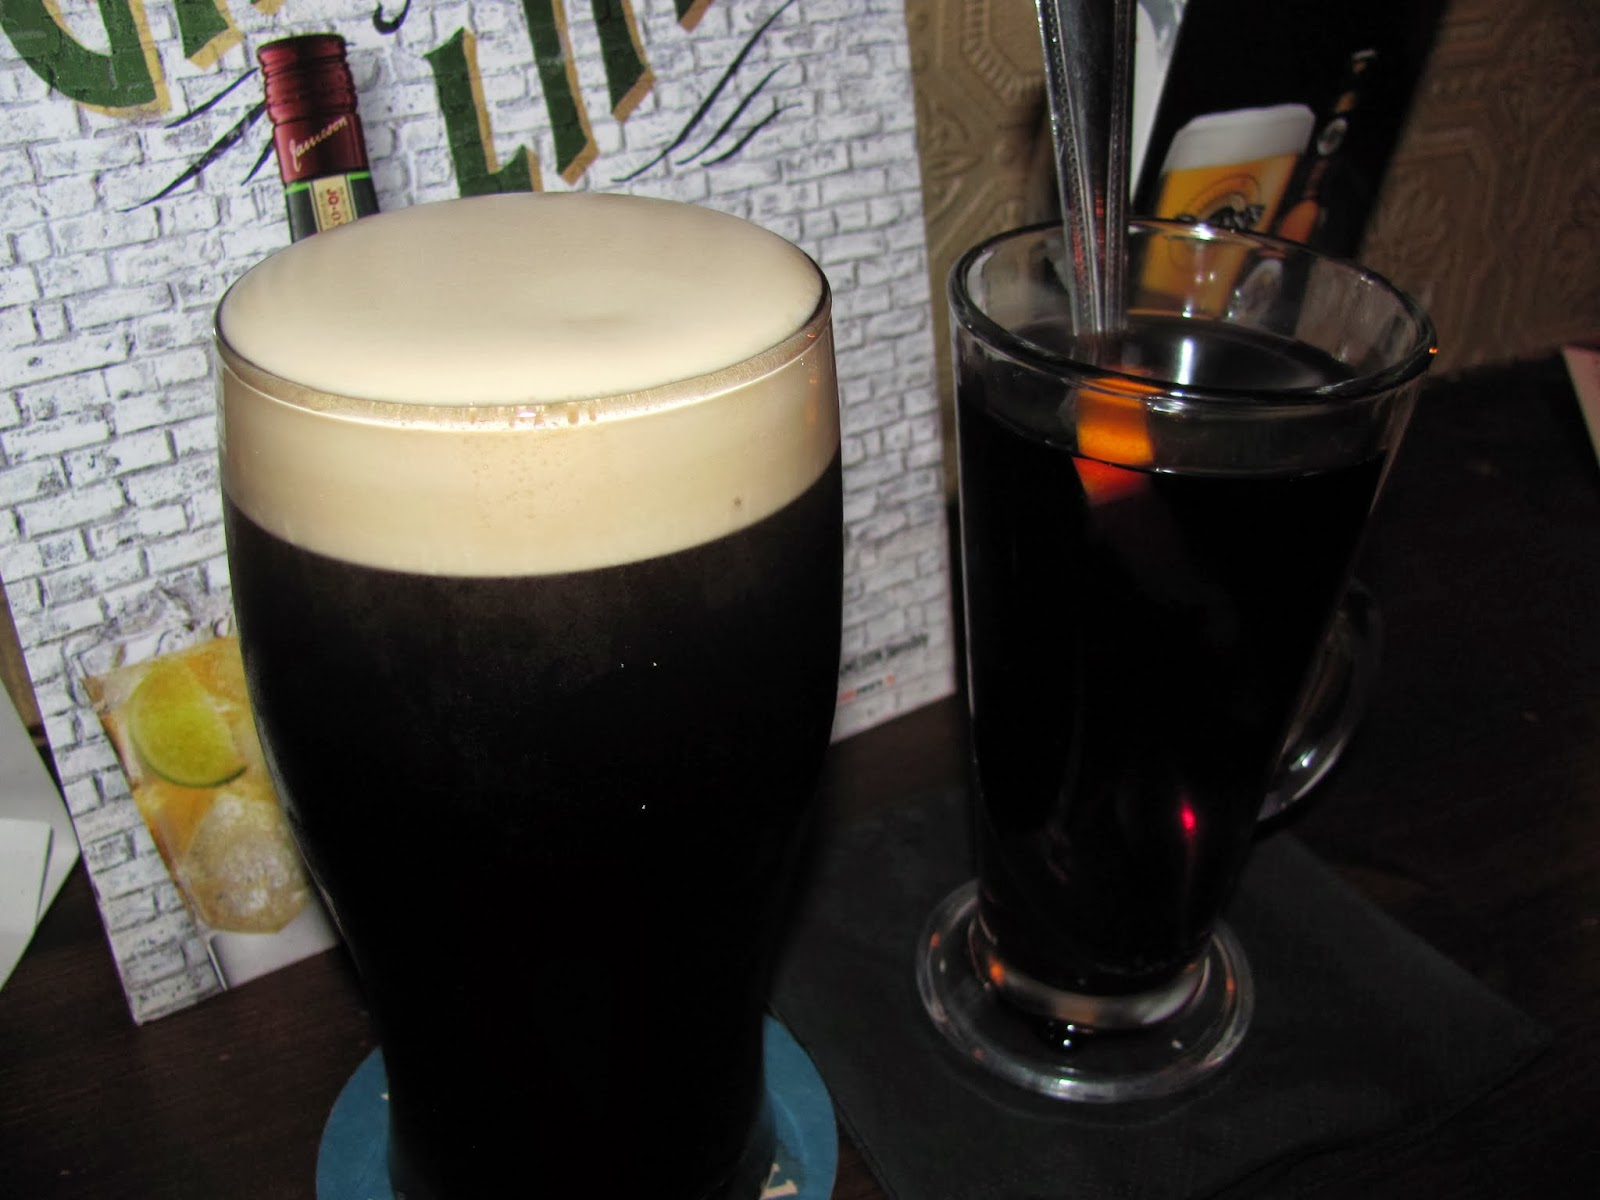 Beamish Stout and Hot Port in Cork, Ireland